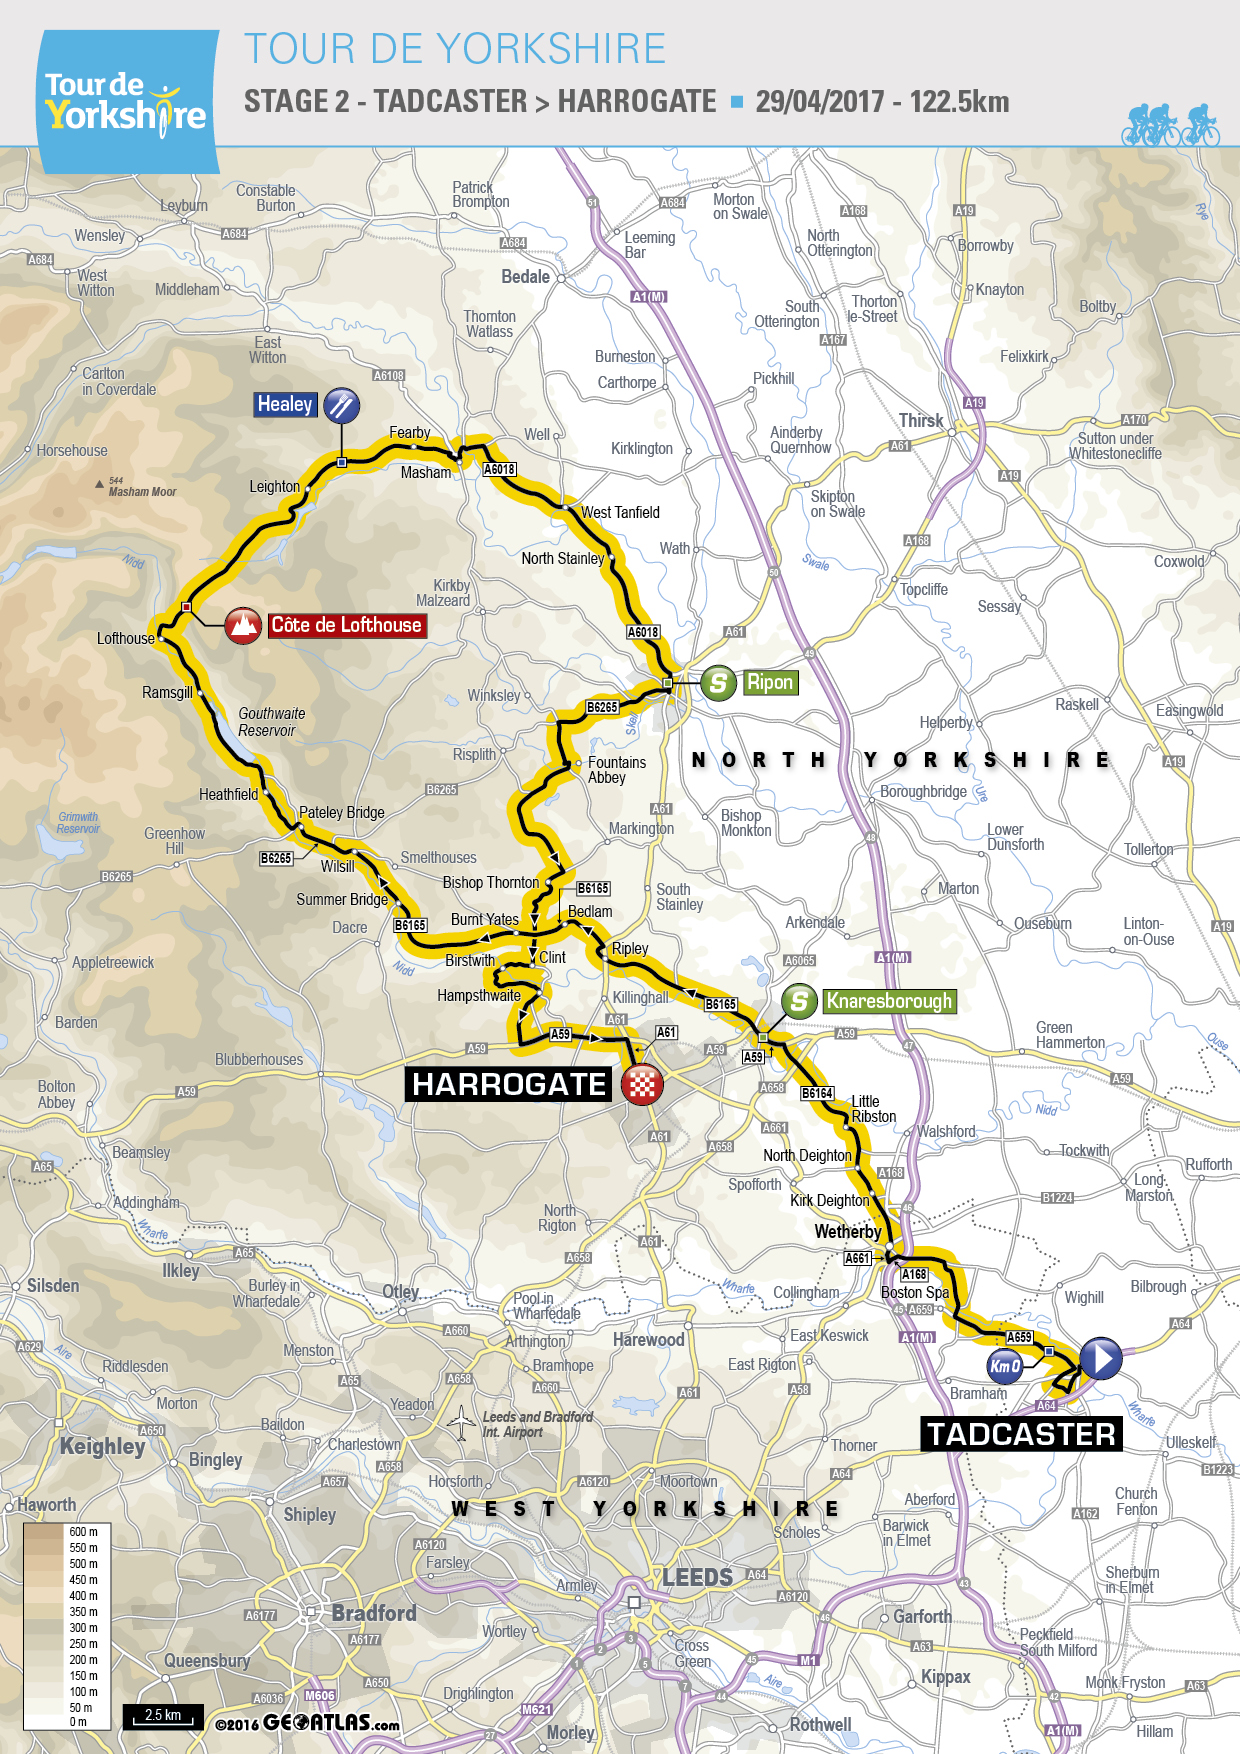 tdy17_map-stage2